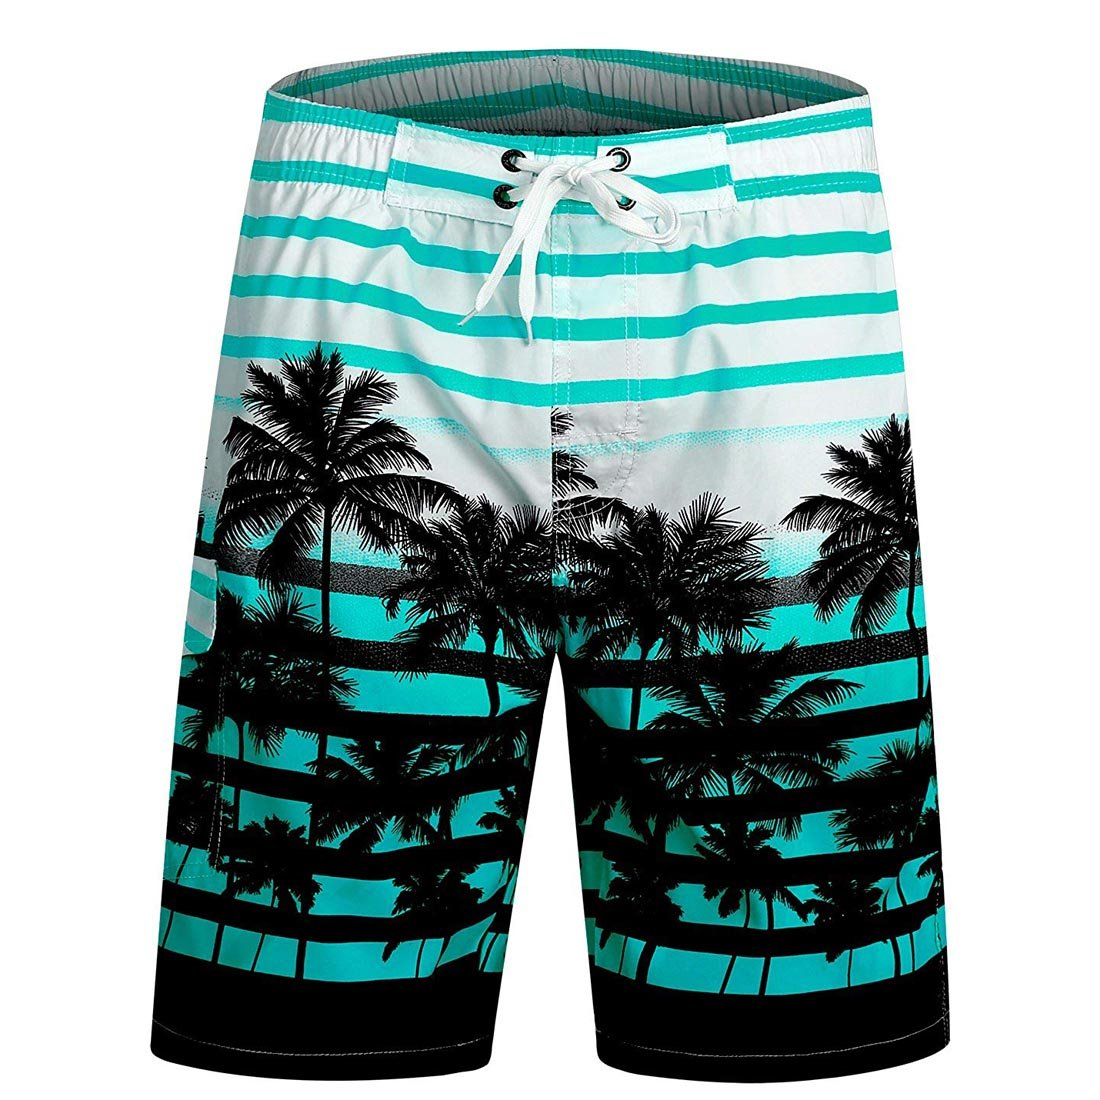 2b01589884 Men's Swim Trunks Quick Dry Beach Shorts